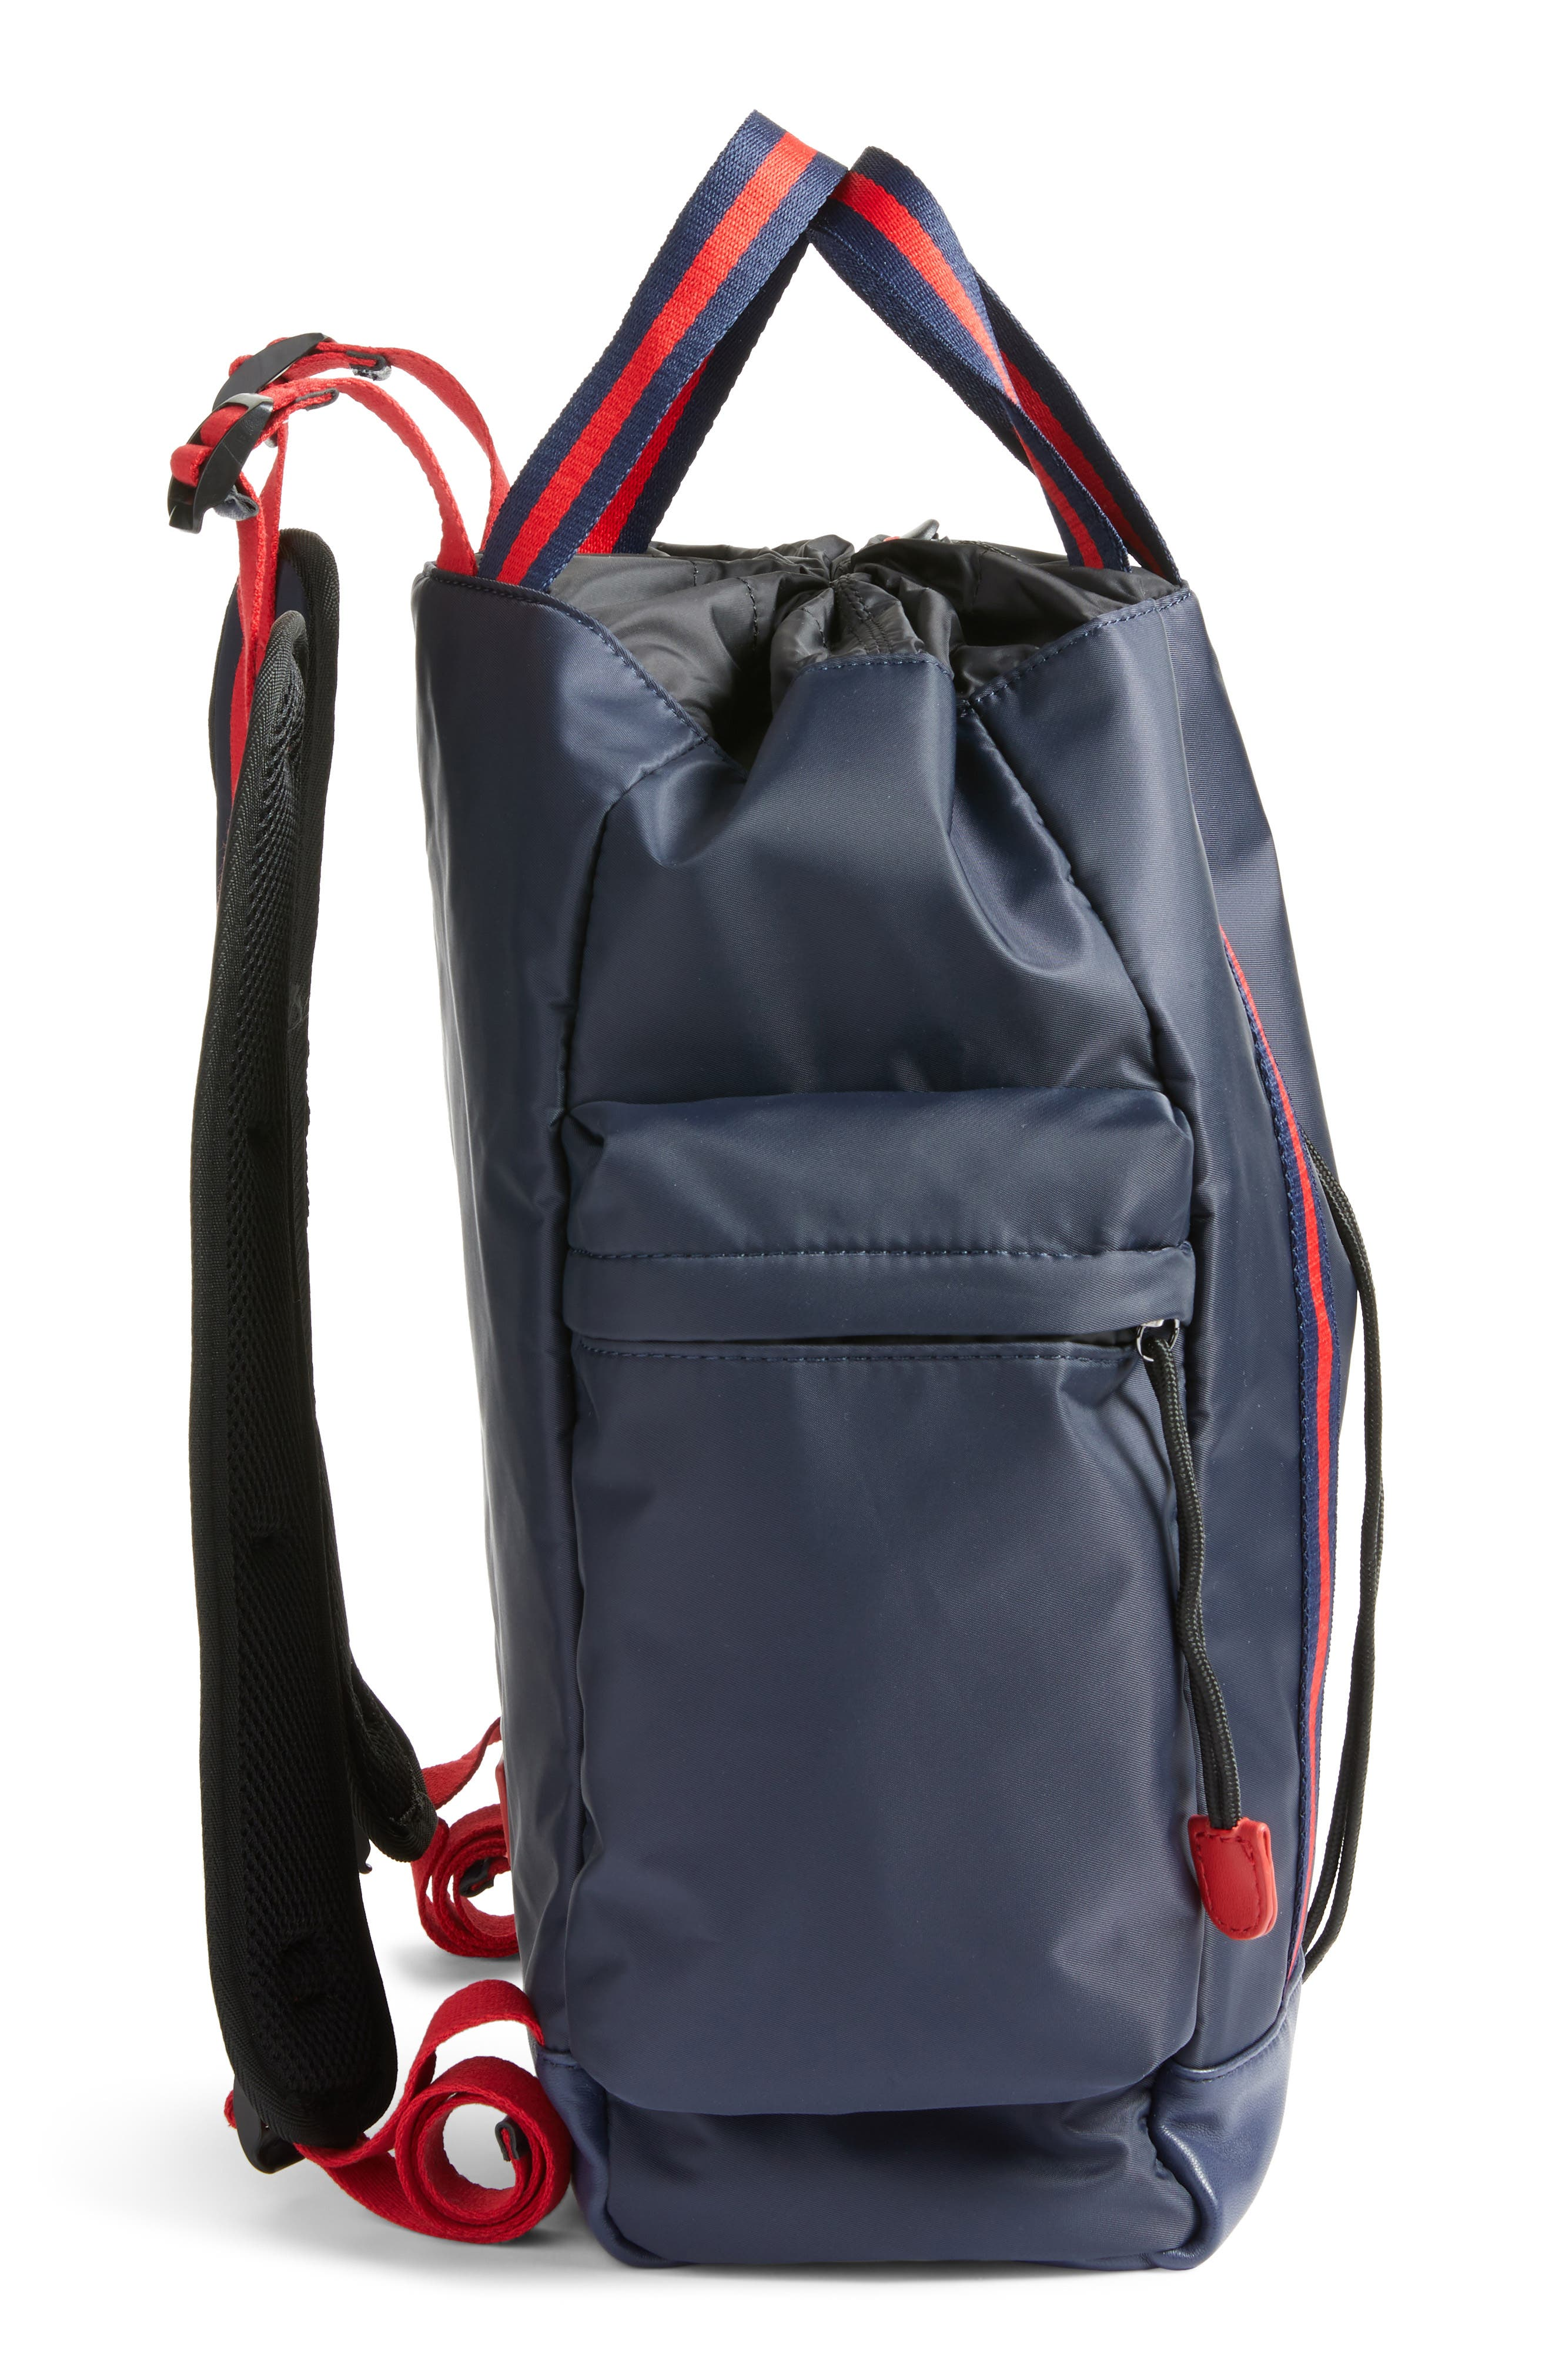 Yungg Stripe Strap Backpack,                             Alternate thumbnail 5, color,                             Navy/ Red